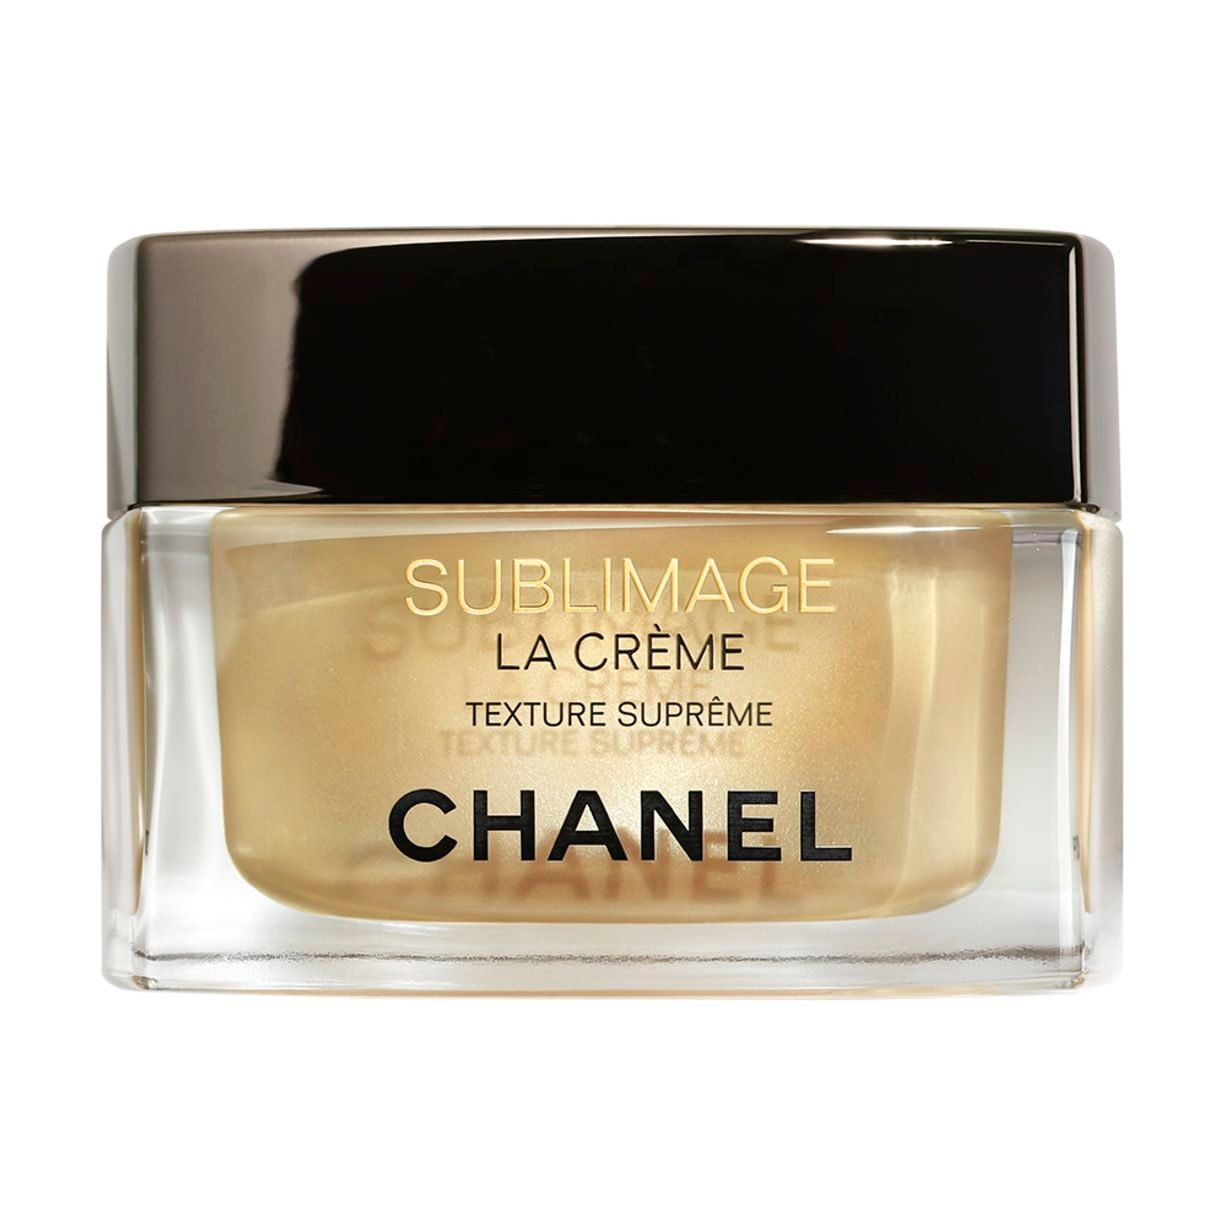 SUBLIMAGE LA CRÈME ULTIMATE SKIN REVITALIZATION - TEXTURE SUPRÊME JAR 50G